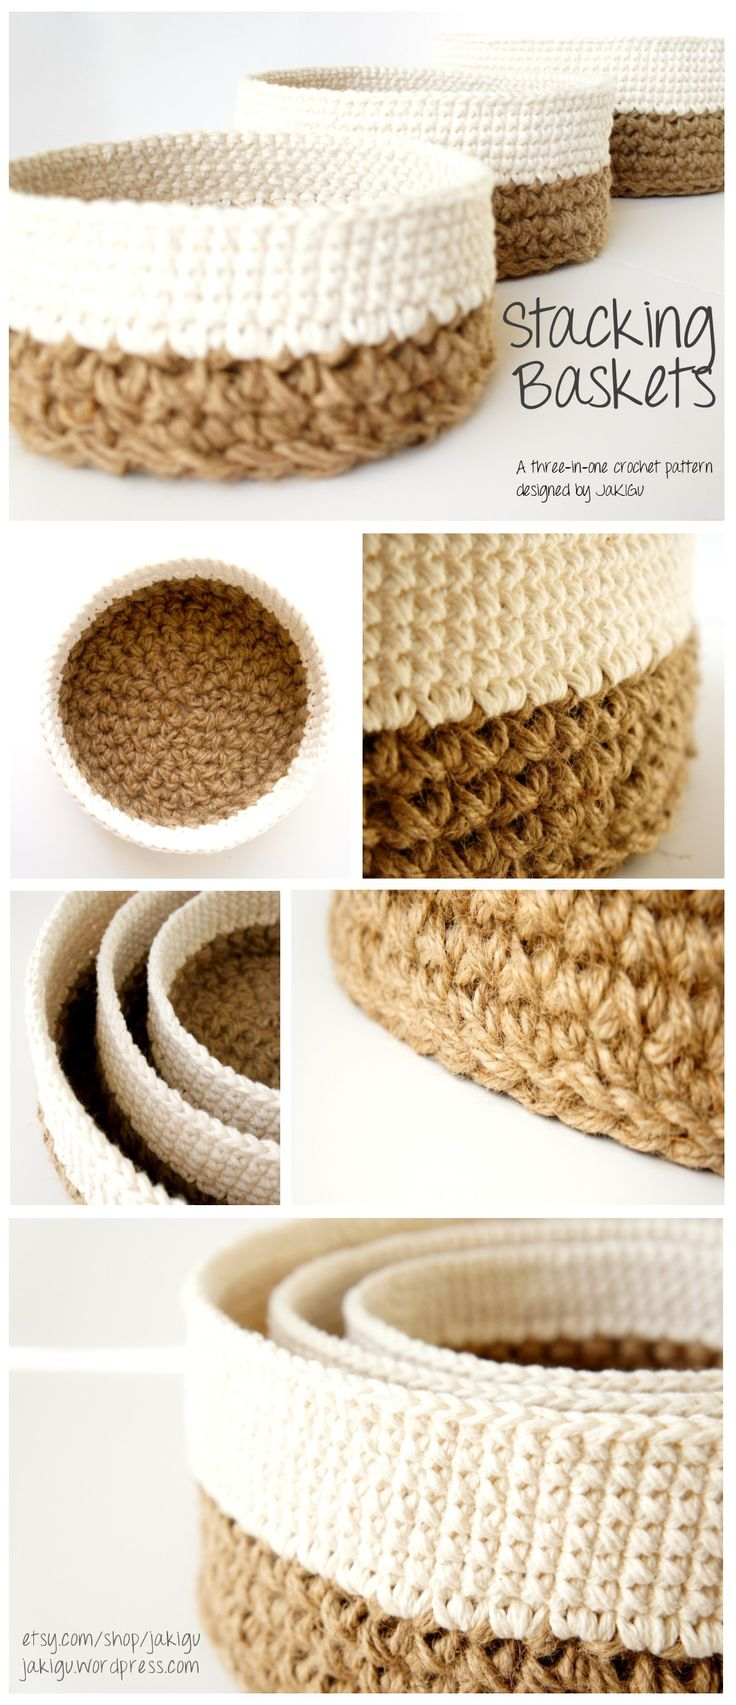 Stacking Baskets: crochet pattern for purchase